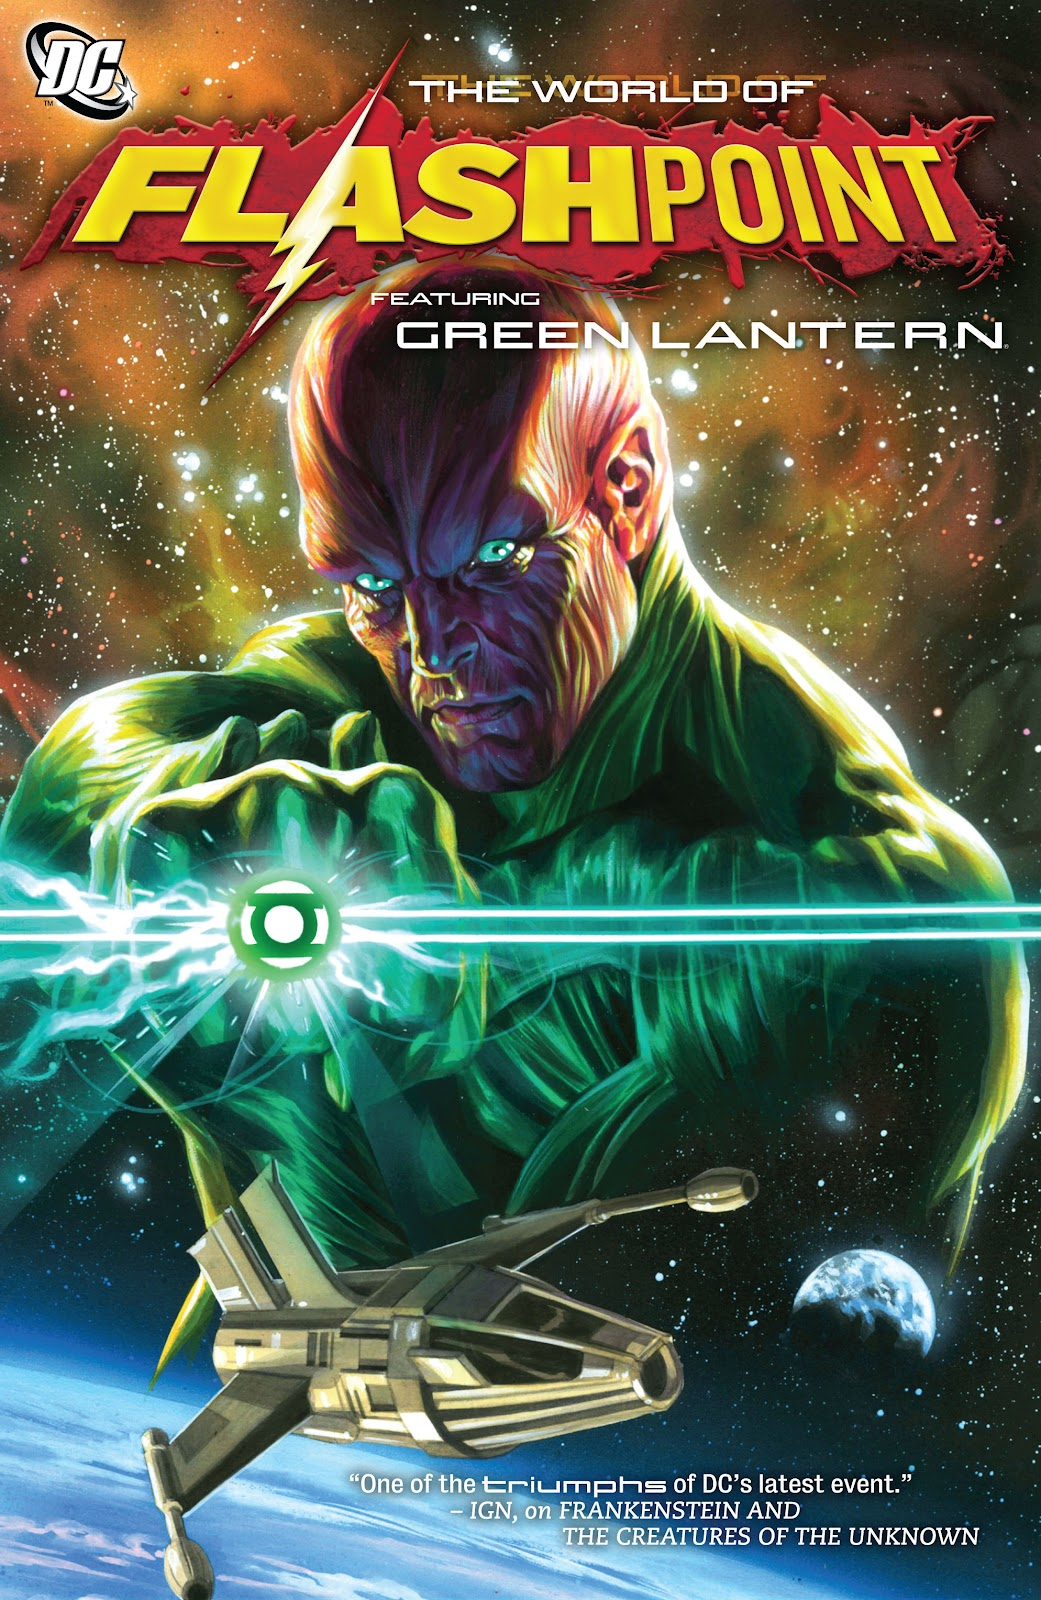 Flashpoint: The World of Flashpoint Featuring Green Lantern Full Page 1